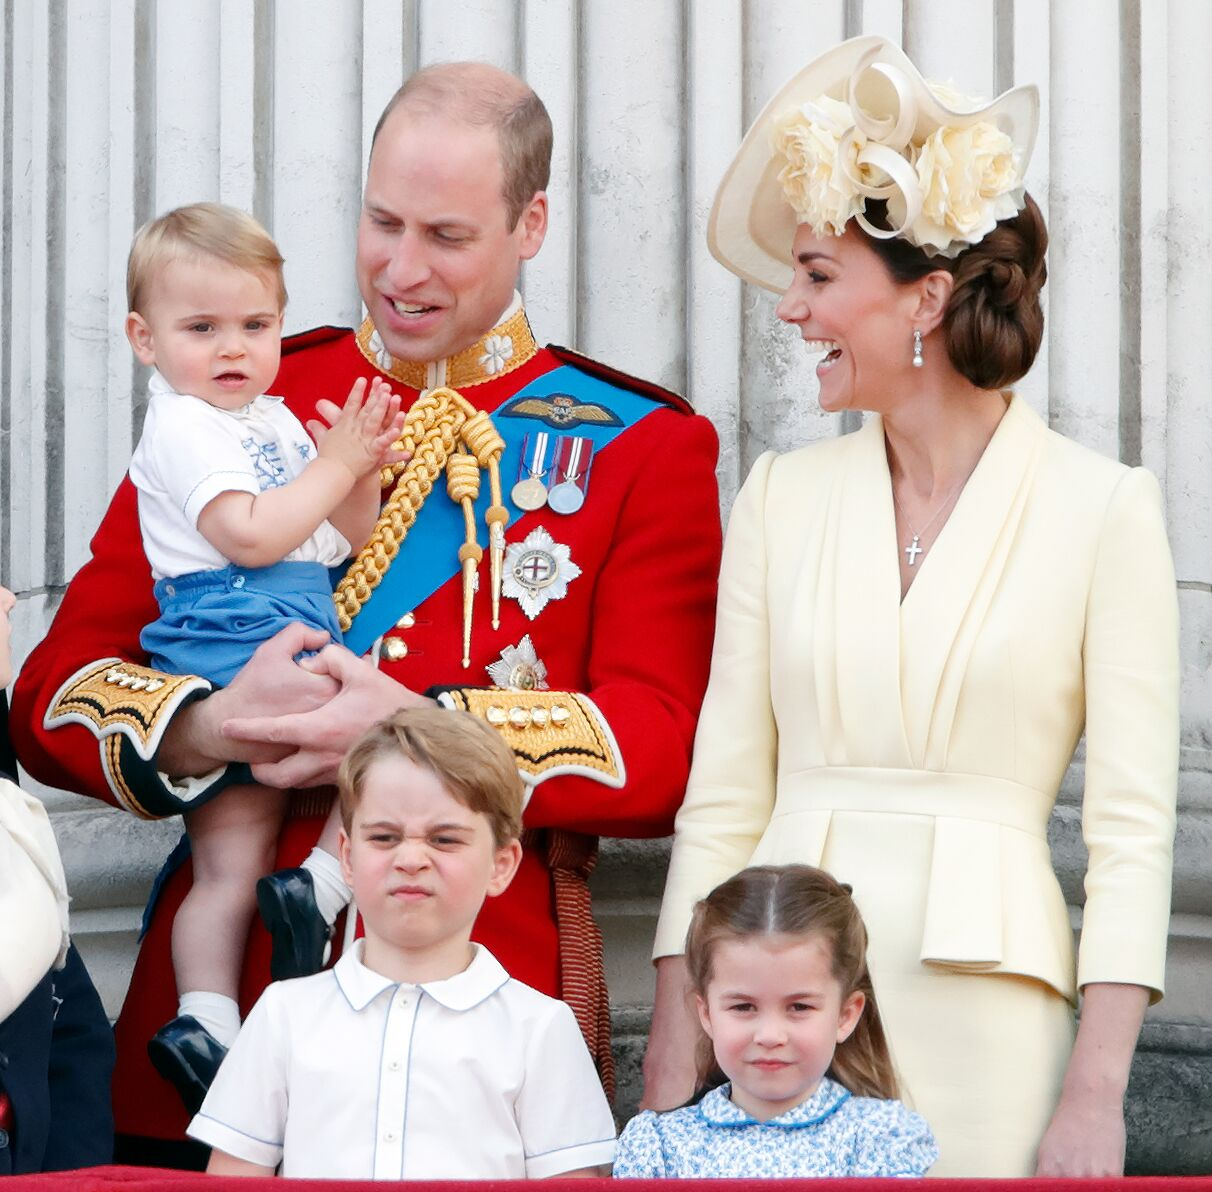 Prince William, Duke of Cambridge, Catherine, Duchess of Cambridge, Prince Louis of Cambridge, Prince George of Cambridge and Princess Charlotte of Cambridge stand on the balcony of Buckingham Palace during Trooping The Colour, the Queen's annual birthday parade, on June 8, 2019 | Photo: Getty Images